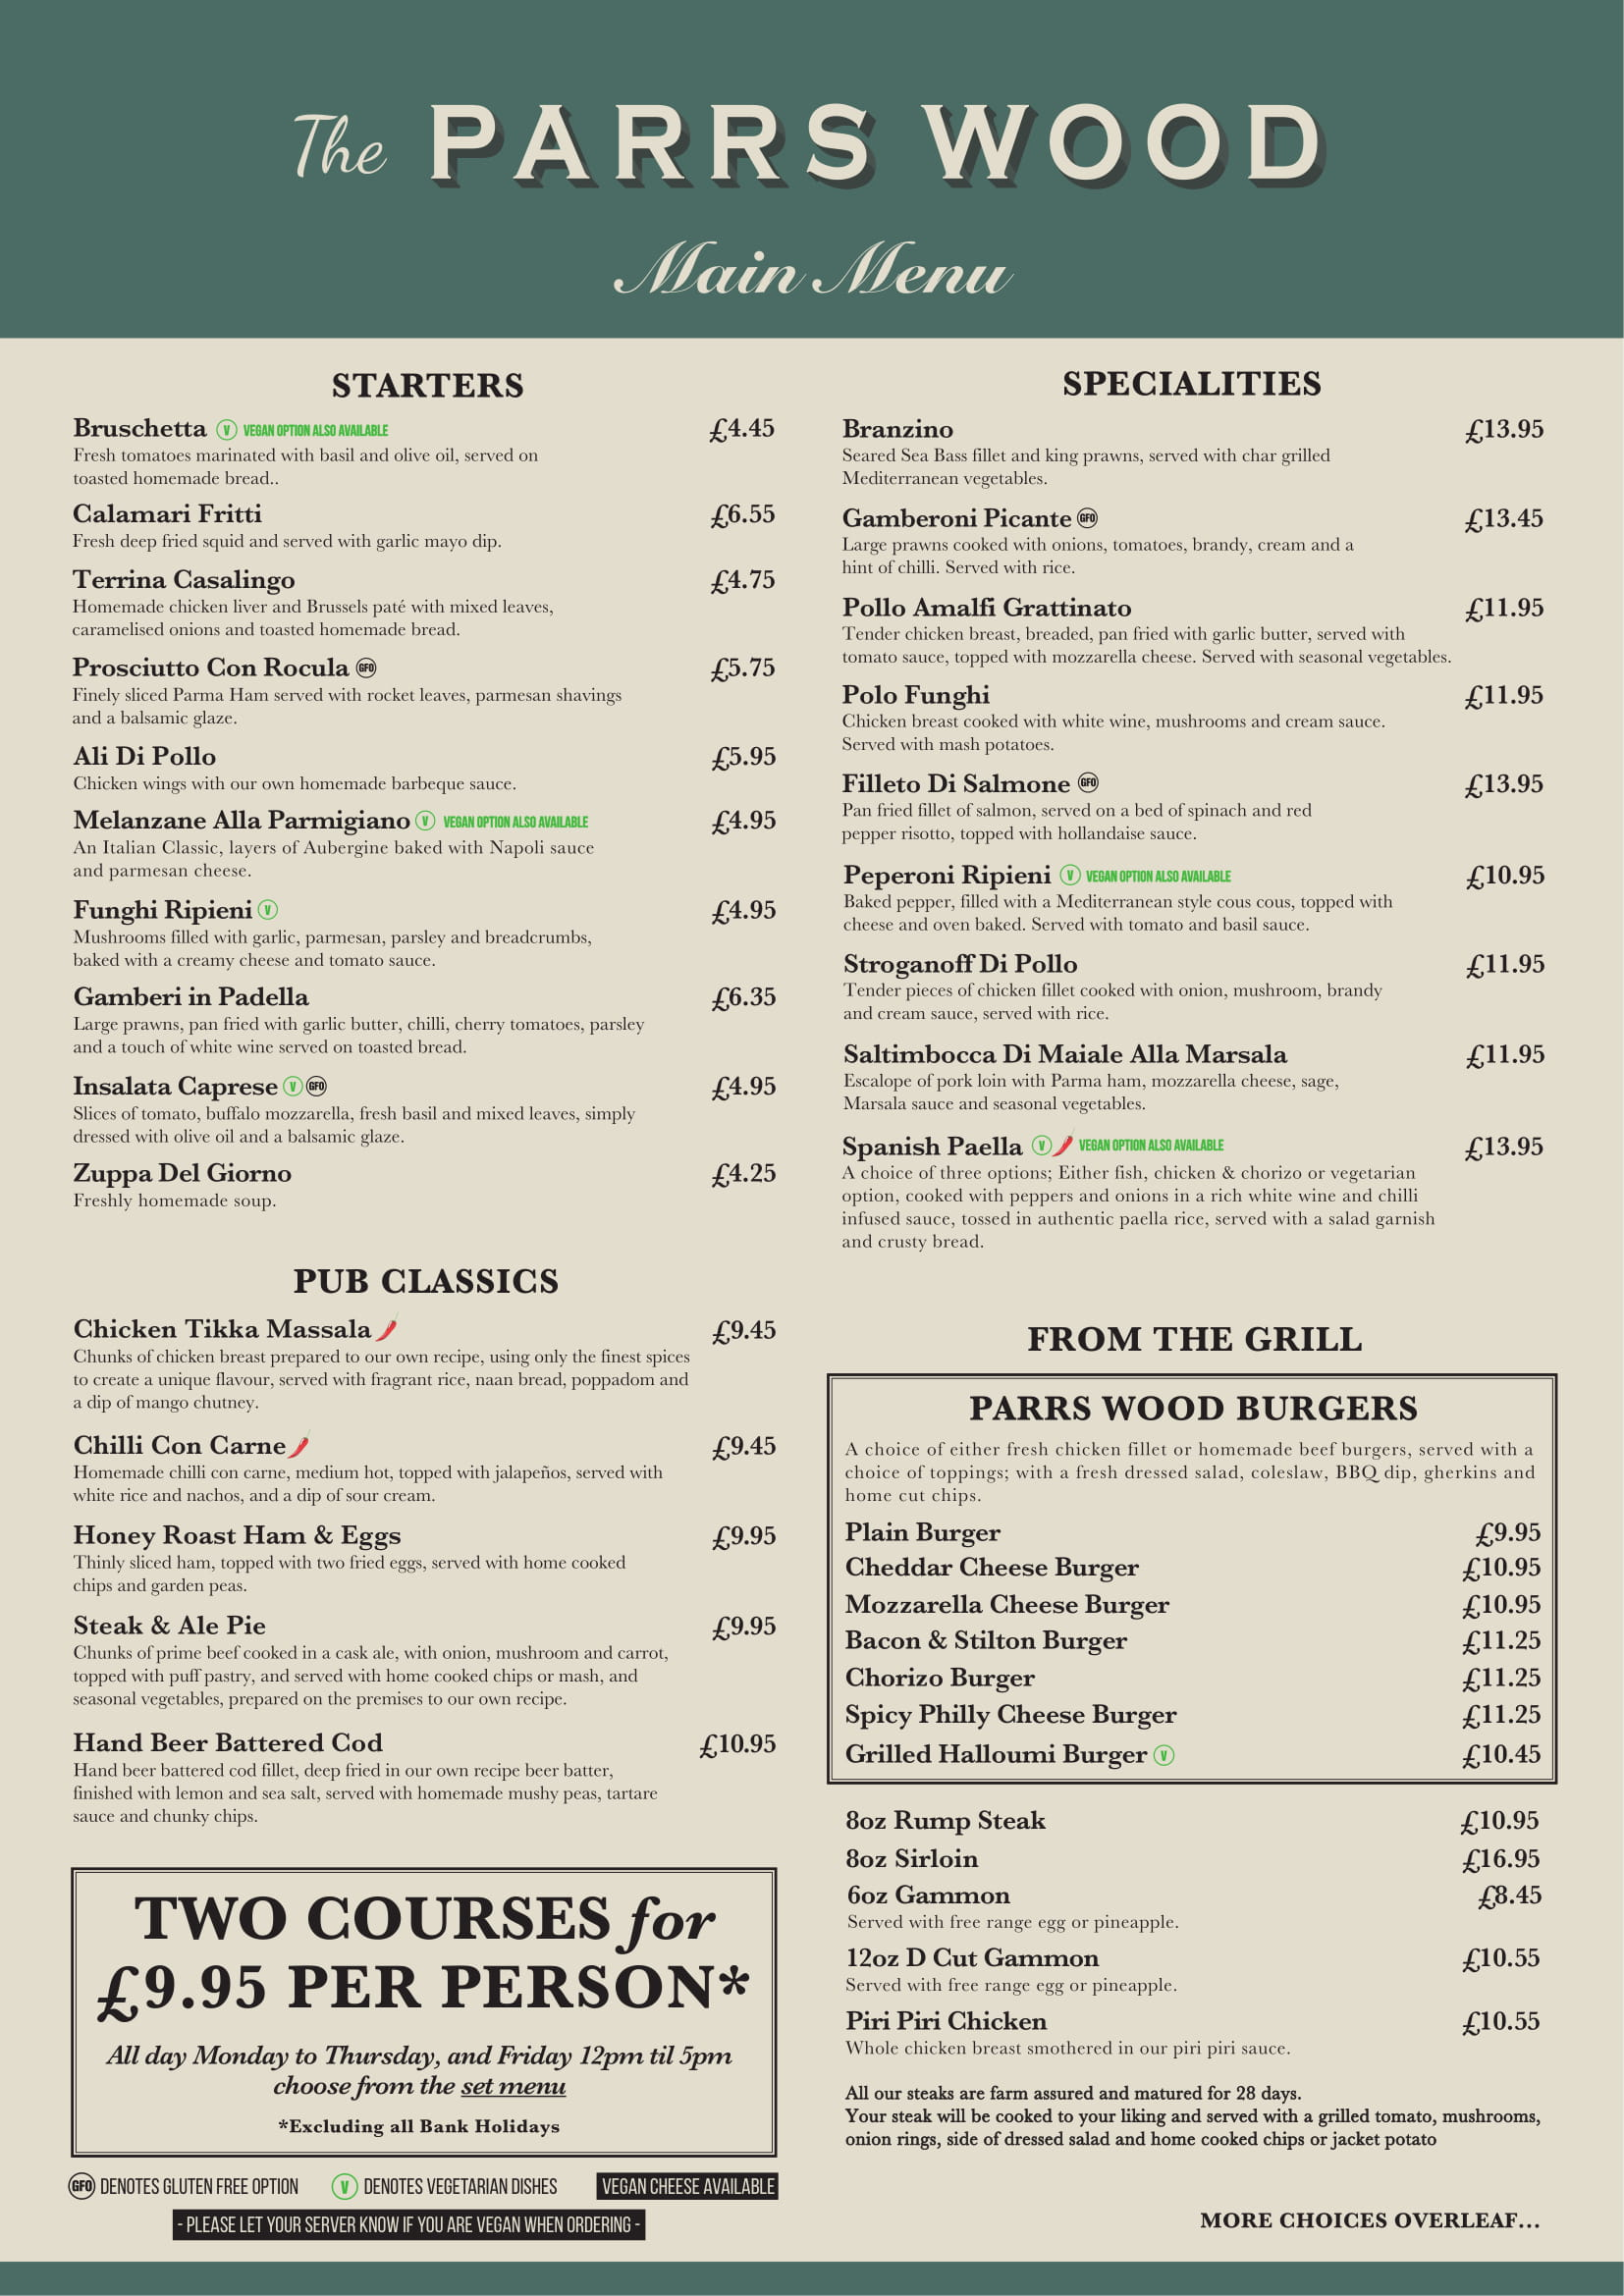 http://www.theparrswoodinn.co.uk/wp-content/uploads/2019/06/ParrsWood-Main-Menu-June-2019-001.jpg